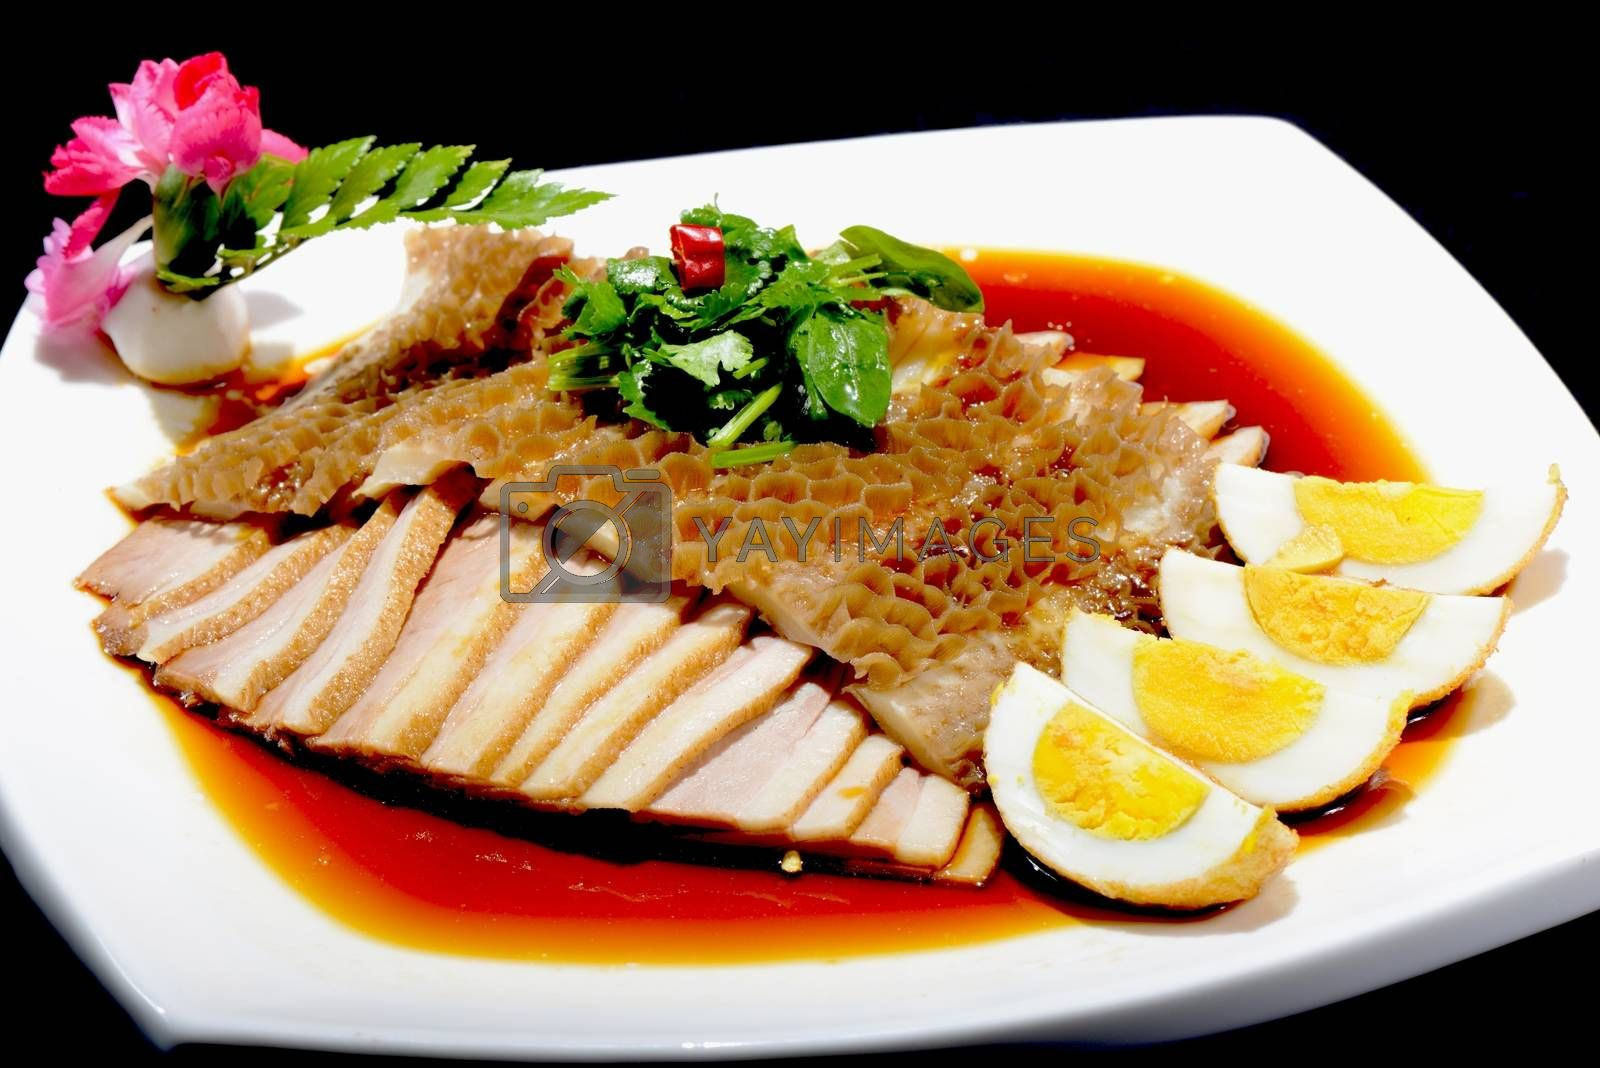 Chinese Food: Salad made of Pork and Eggs by bbbar